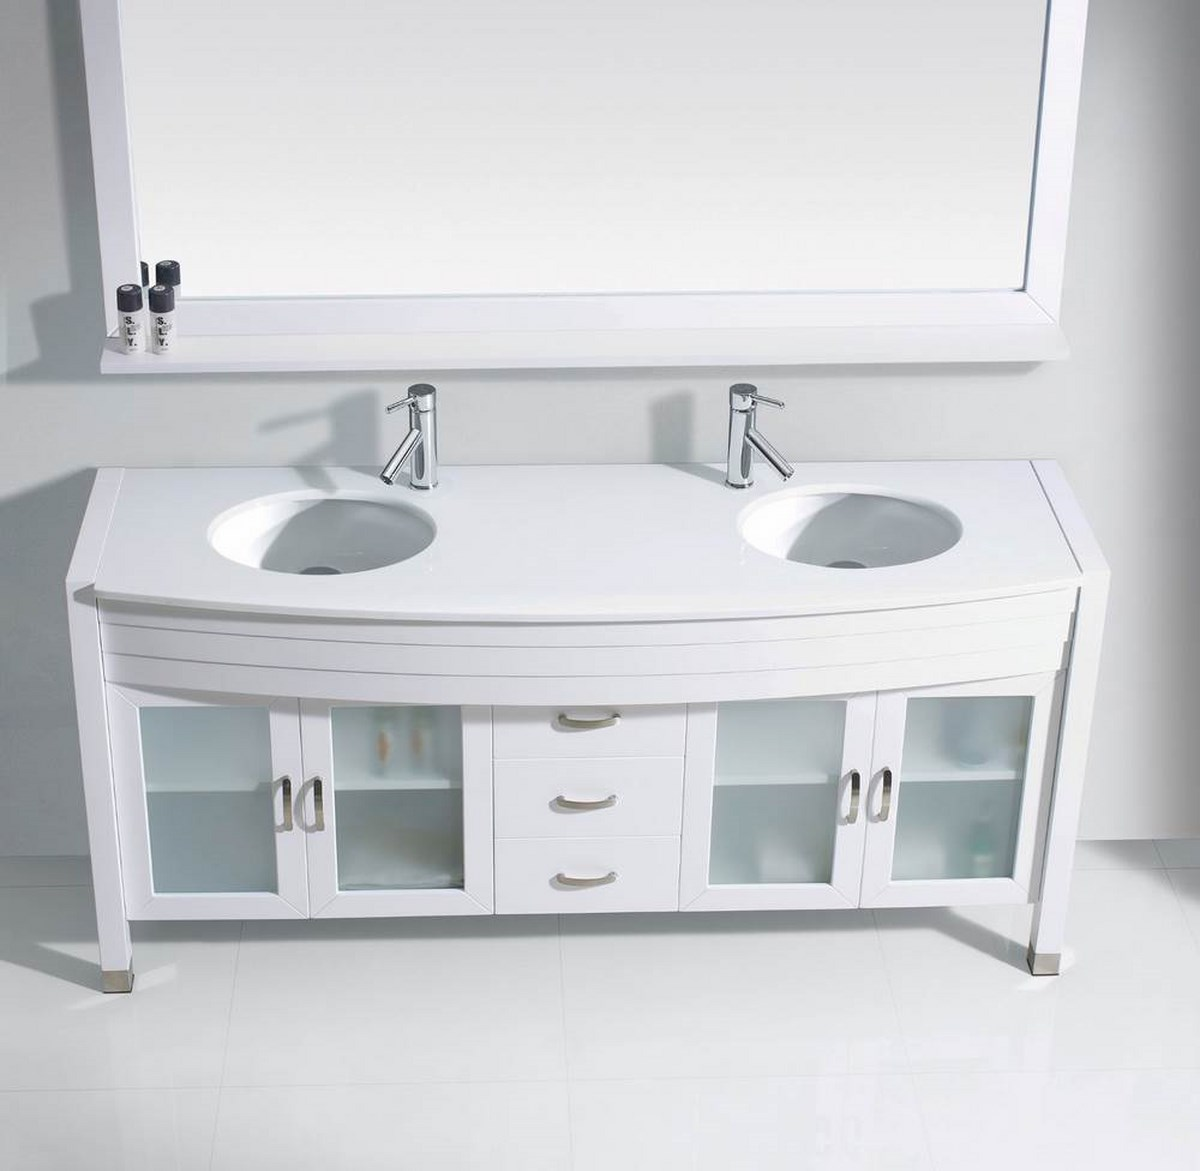 Bathroom Vanities, Double Sink Vanities  Home Decor, Interior Design